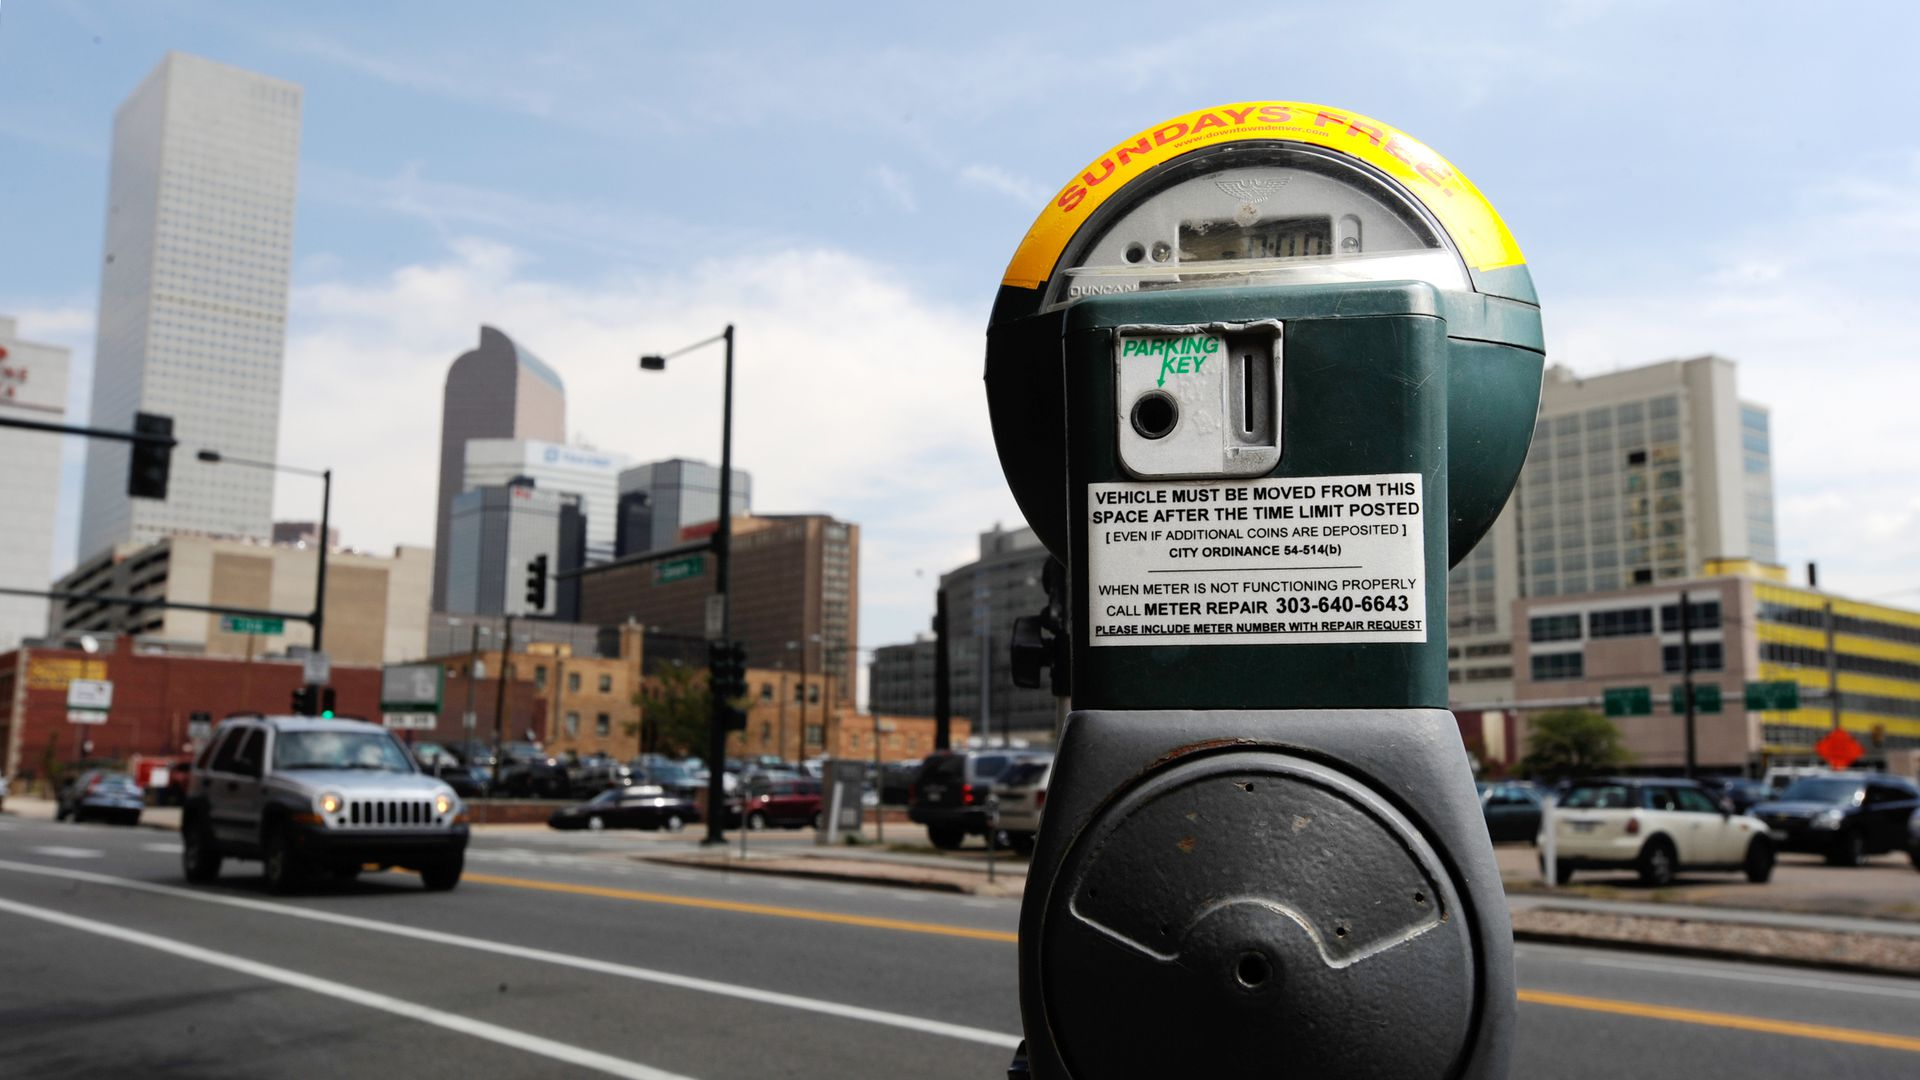 A photo of a parking meter in front of the Denver skyline